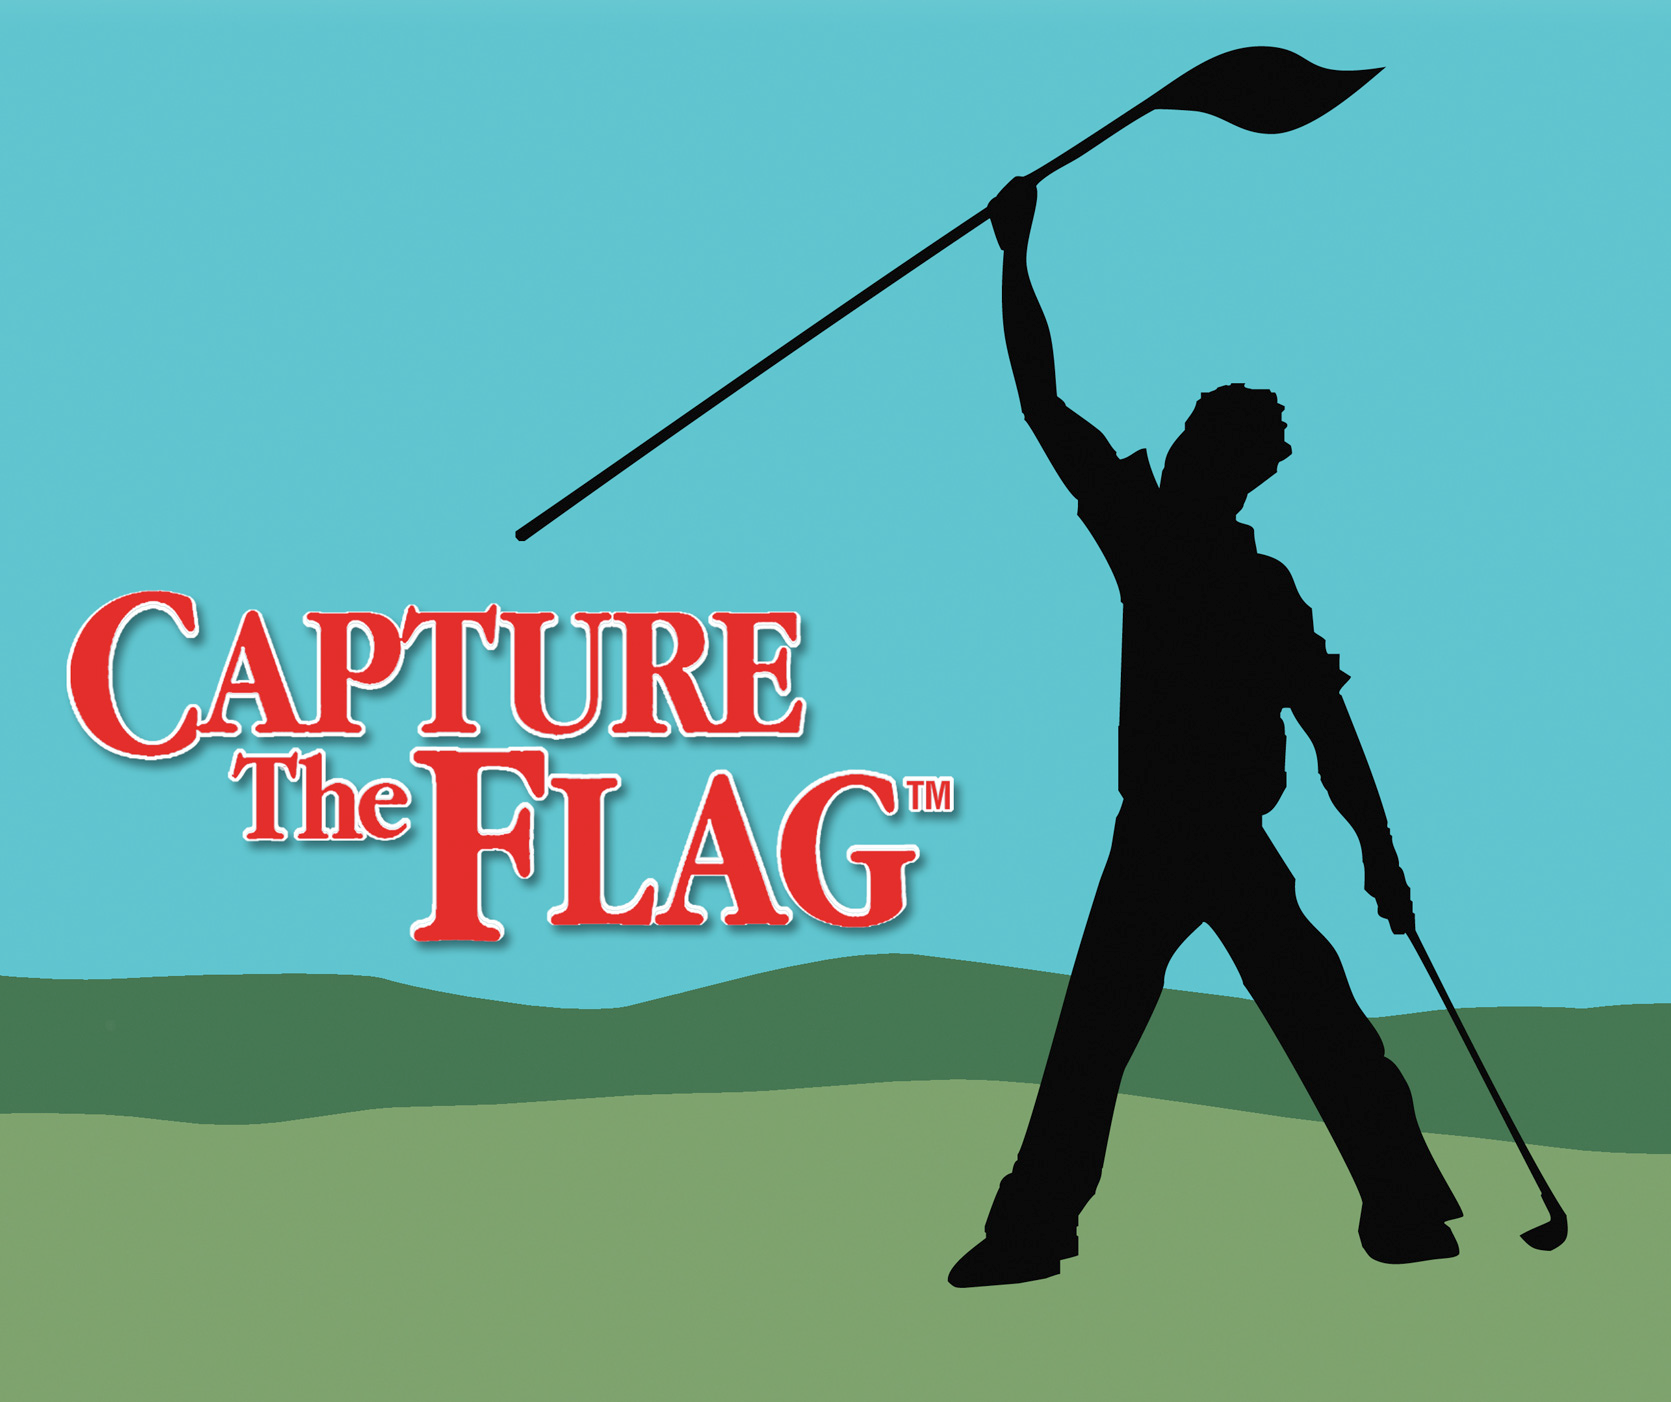 Capture the flag golf grassroots sports marketing for Capture the flag